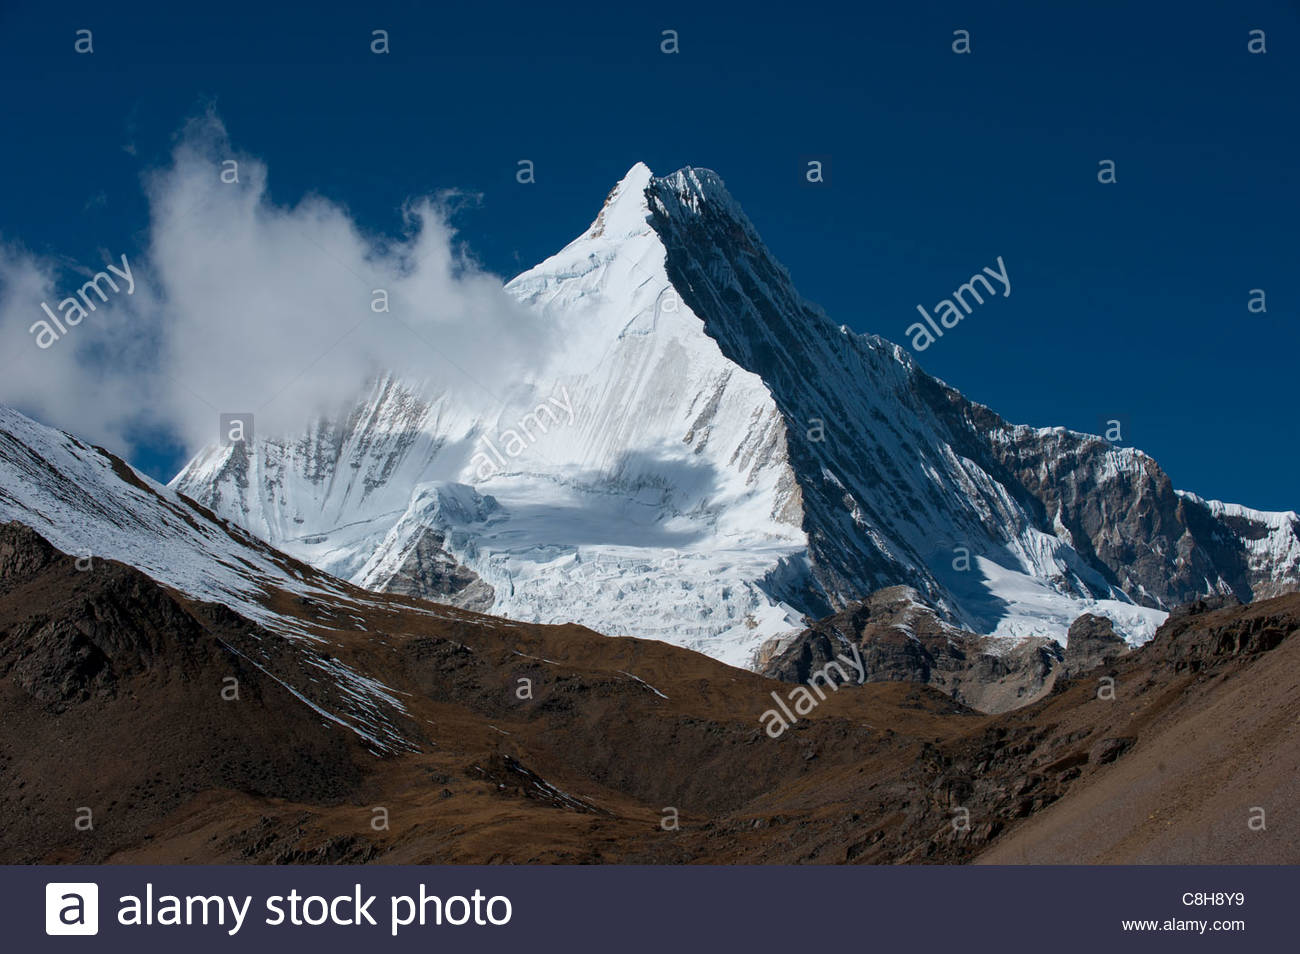 The white pyramid shape of Jichu Drake seen from the Nyile La pass - Stock Image